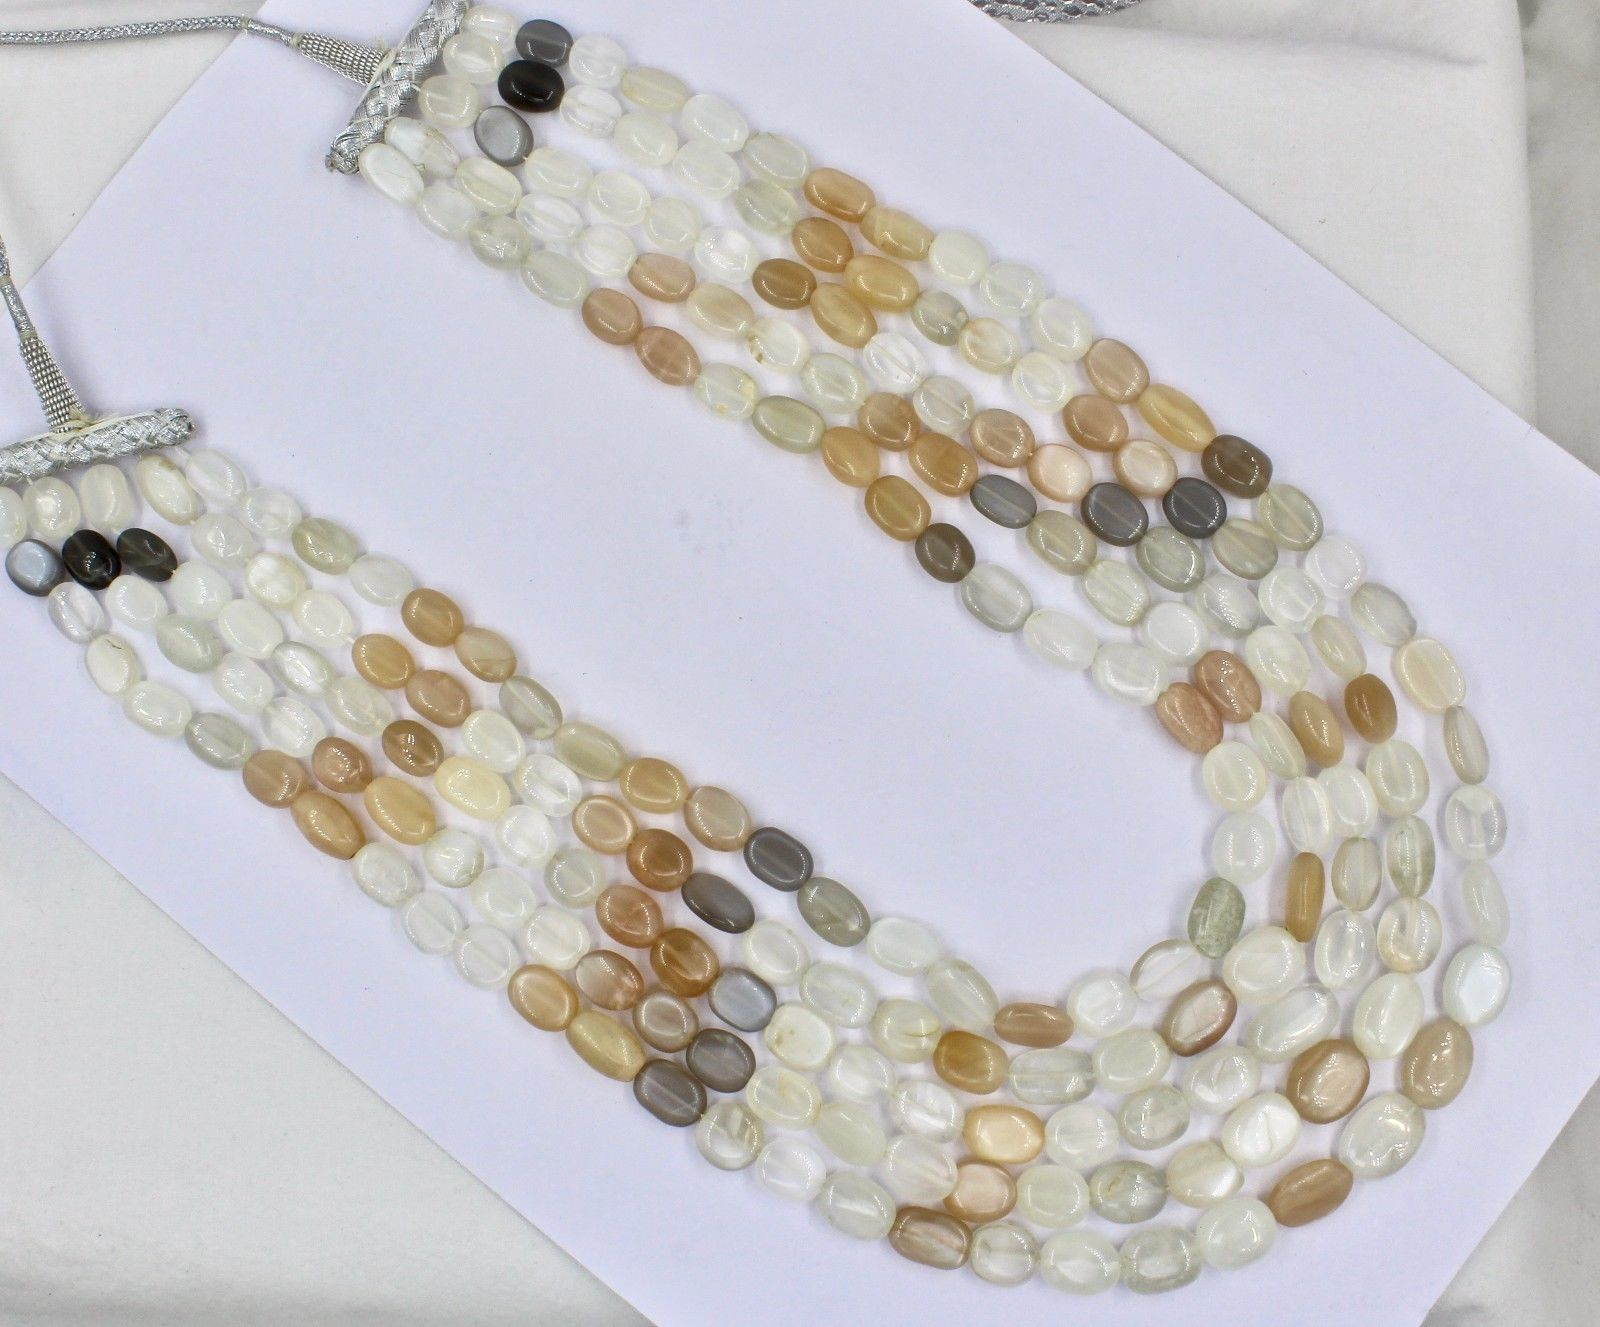 NATURAL MULTI MOONSTONE BEADS CABOCHON 5 LINE 950 CTS GEMSTONE LADIES NECKLACE image 6